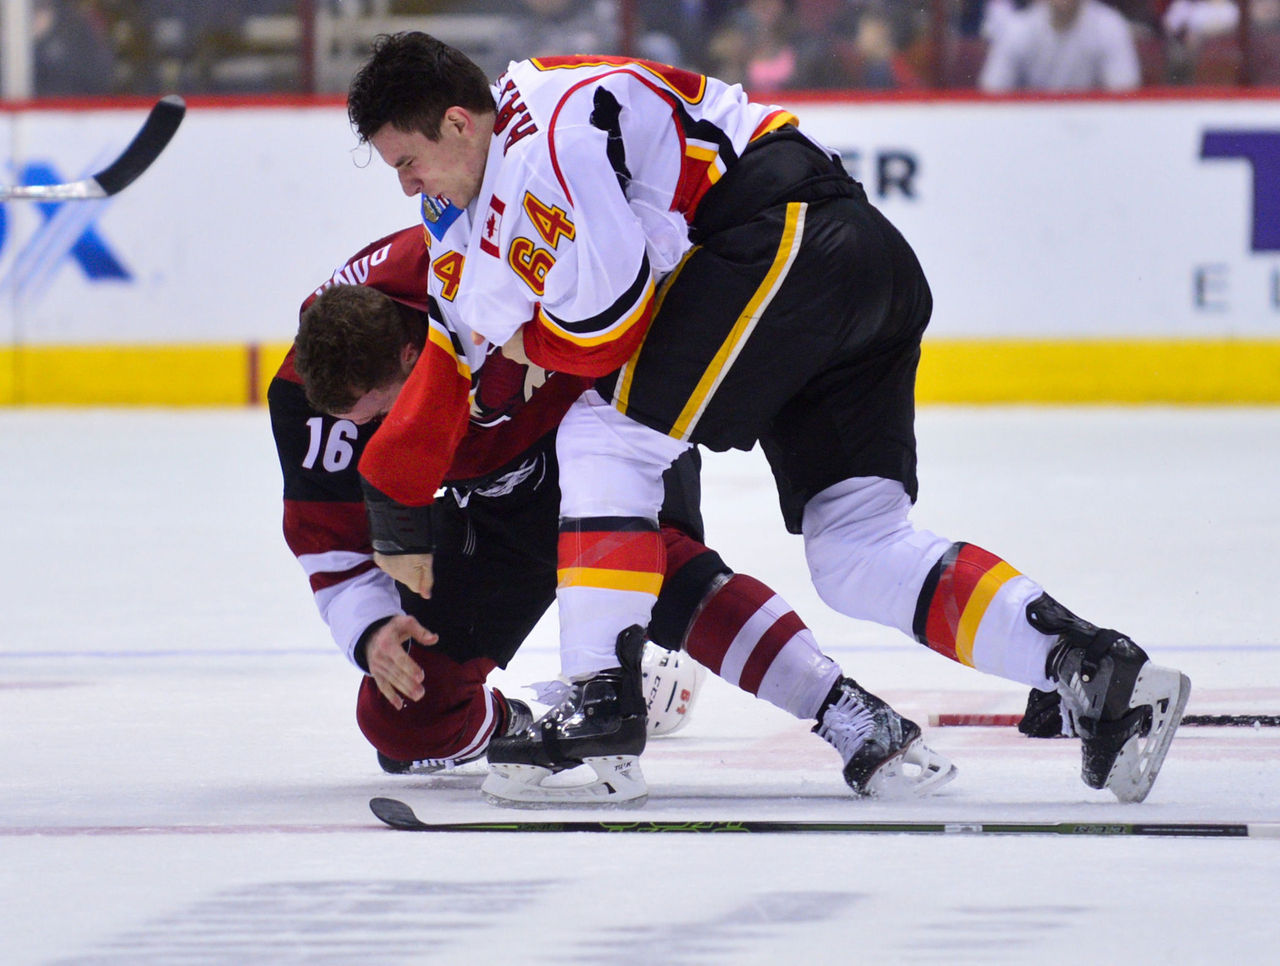 Cropped 2016 12 09t041711z 2059597188 nocid rtrmadp 3 nhl calgary flames at arizona coyotes